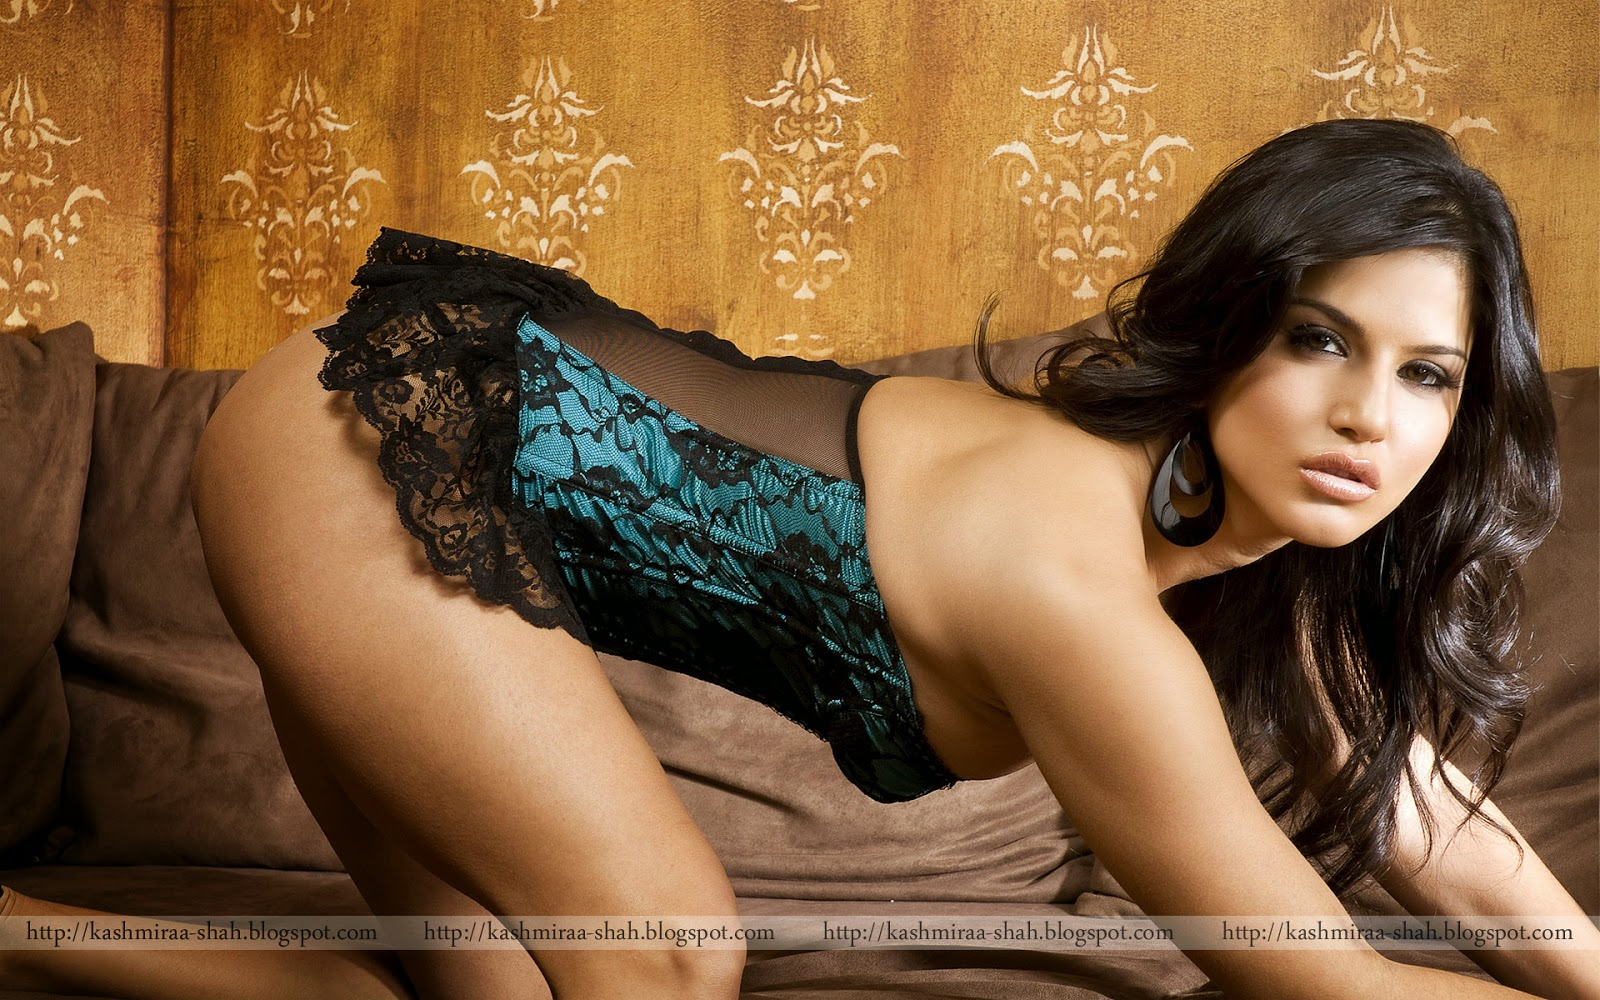 Kashmira Shah Sizzling Hot Pictures Of Sunny Lione-1006